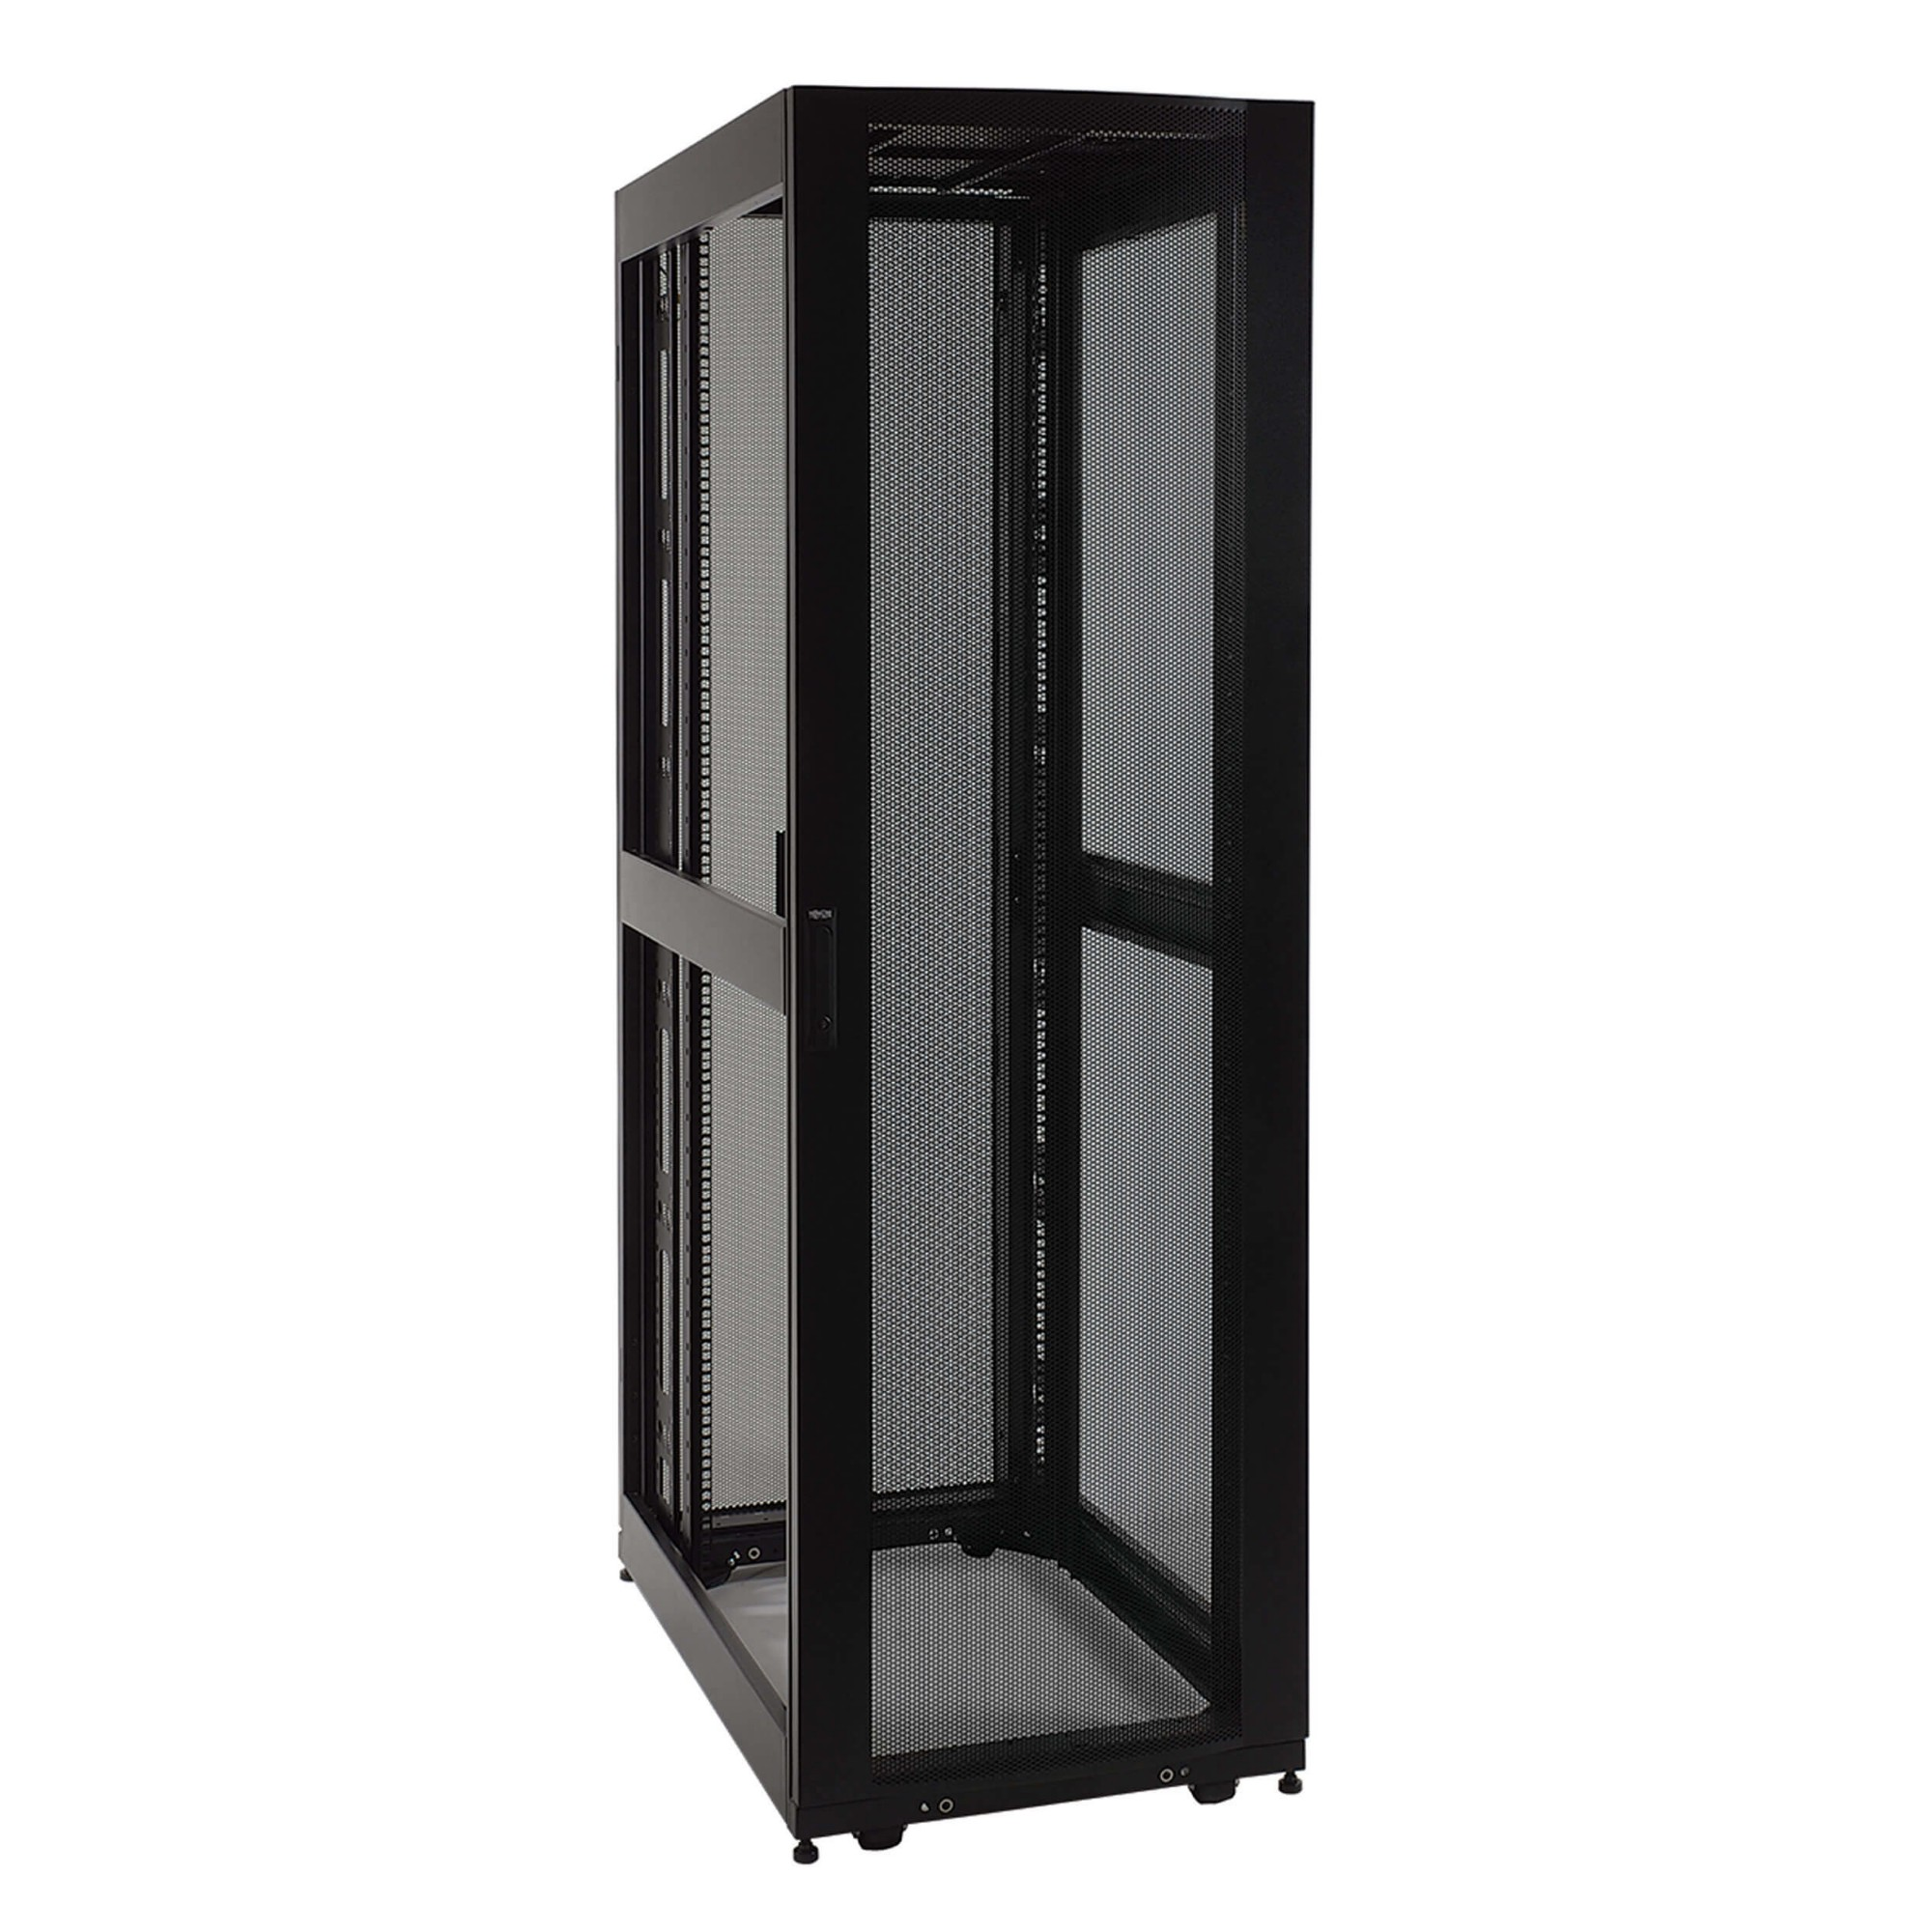 TRIPP LITE SRX47UBEXP 47U SERVER RACK, EURO-SERIES - EXPANDABLE CABINET, STANDARD DEPTH, SIDE PANELS NOT INCLUDED